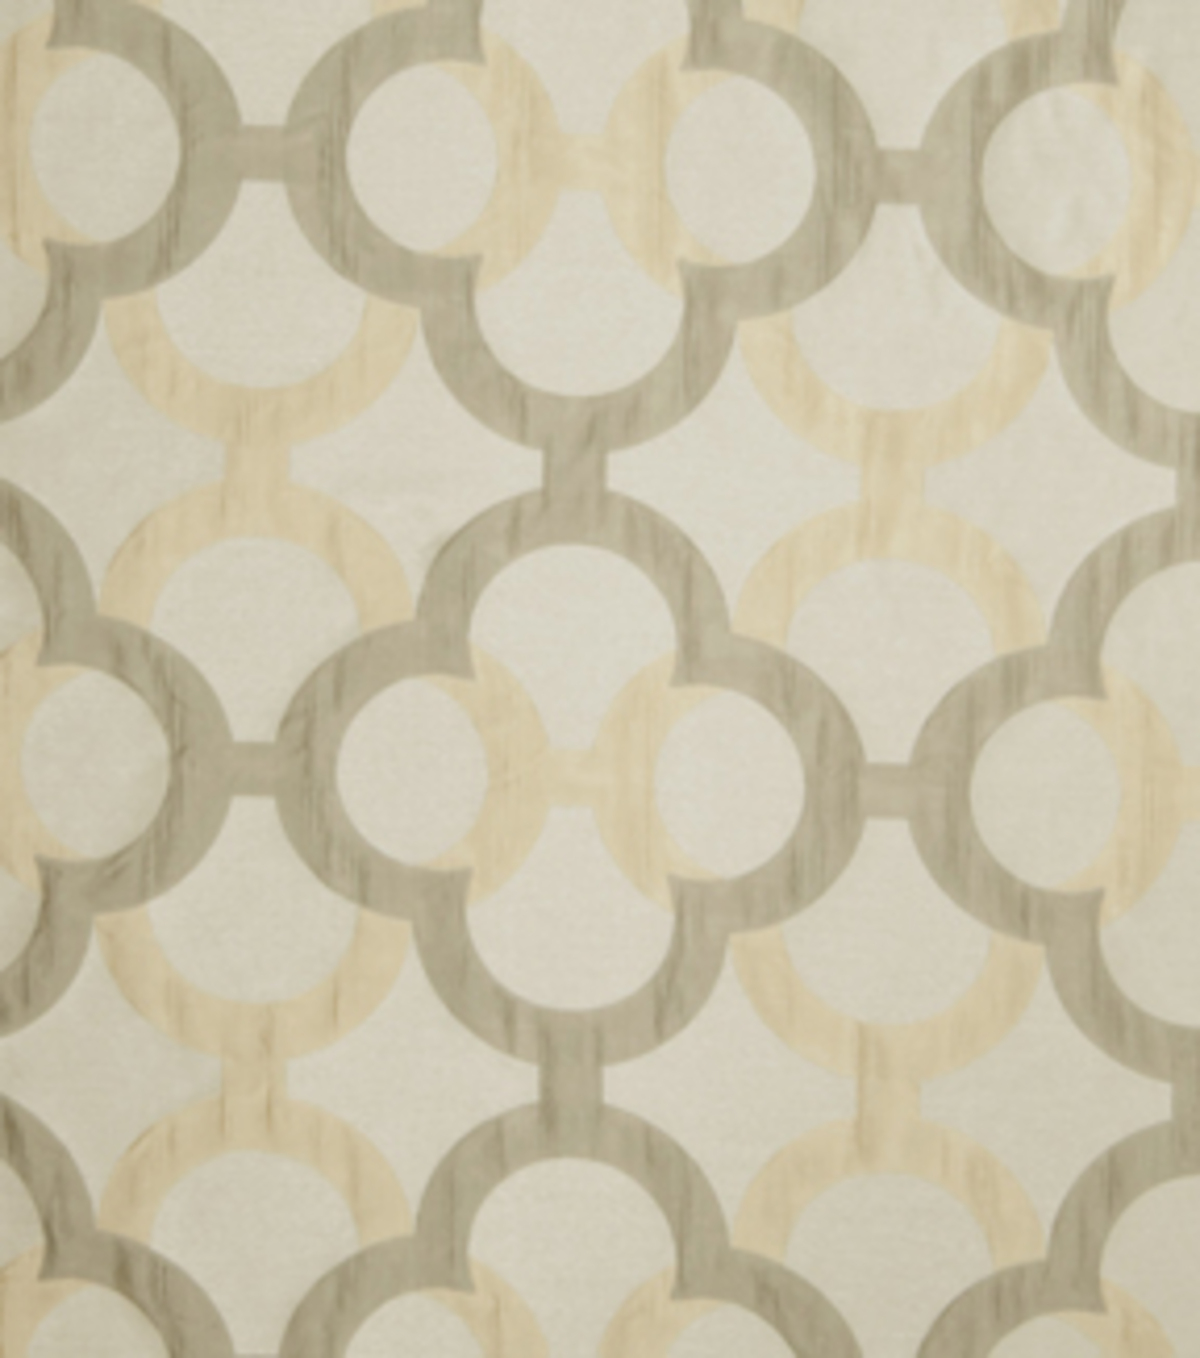 Home Decor 8\u0022x8\u0022 Fabric Swatch-Eaton Square Geology Moonstone